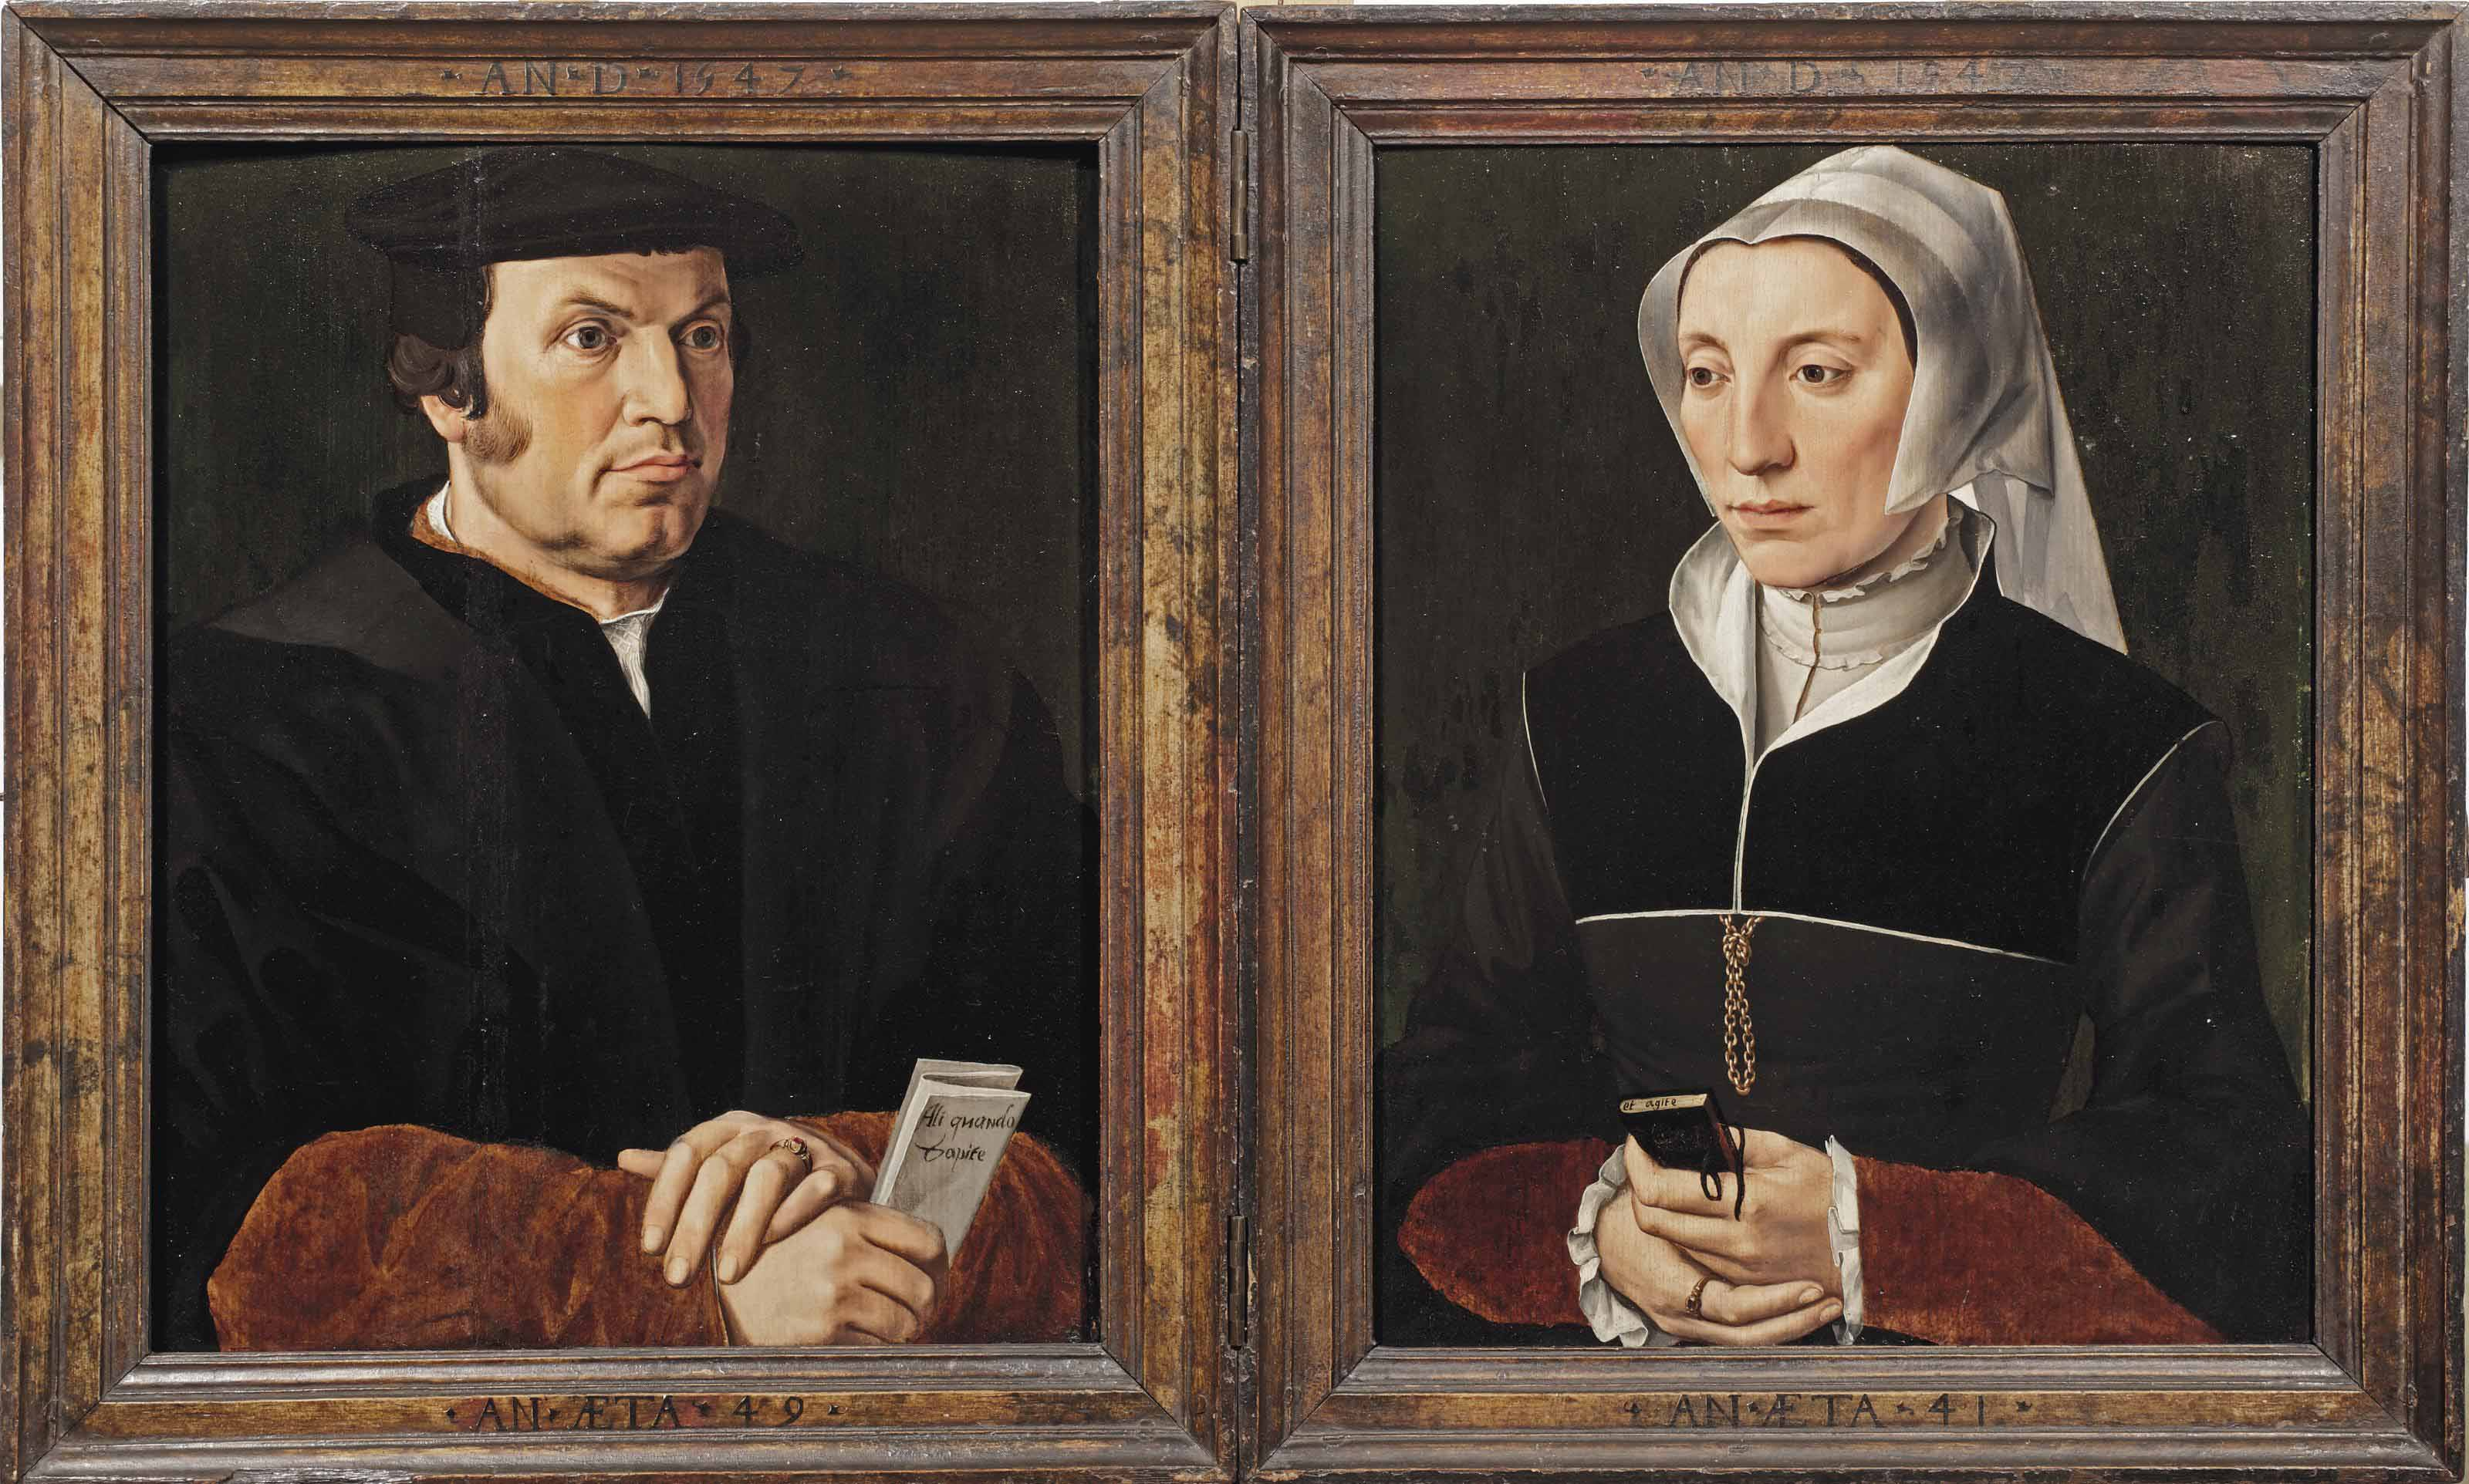 A diptych: left wing: Portrait of Leonard (Lenaert) van Casembroot (1495-1558), Burgomaster of Bruges, half-length, in a black coat and a black hat, holding a letter in his right hand, insribed 'Ali quoando  Capite'; right wing: Portrait of (possibly) Godelieve Brest (1510-1570), half-length, in a black dress and a white cap, holding a prayer book in her hands, inscribed 'et agite'